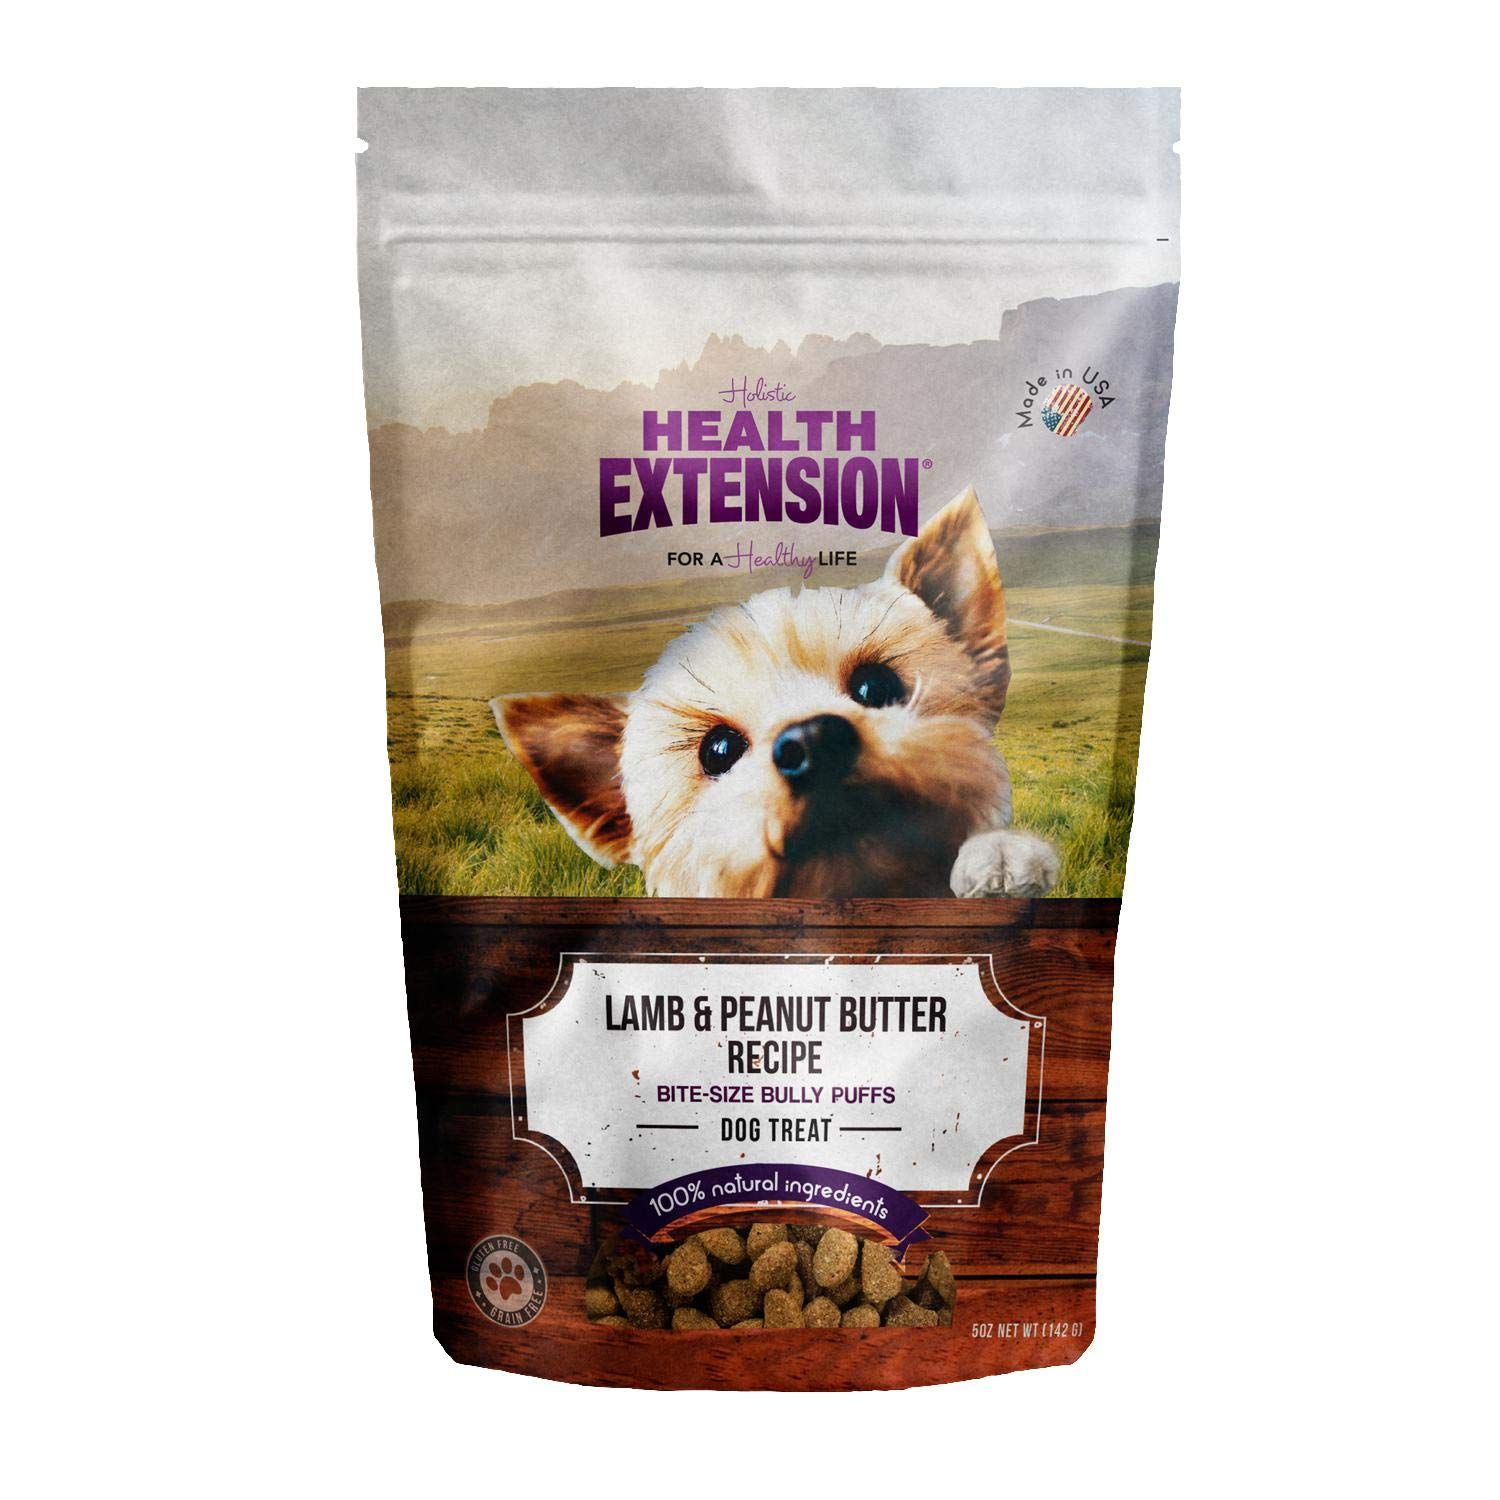 Health Extension Bully Puffs Dog Treat Lamb And Peanut Butter 5 Oz 142 G For More Information Visi Peanut Butter Dog Treats Dog Treats Grain Free Dog Treats